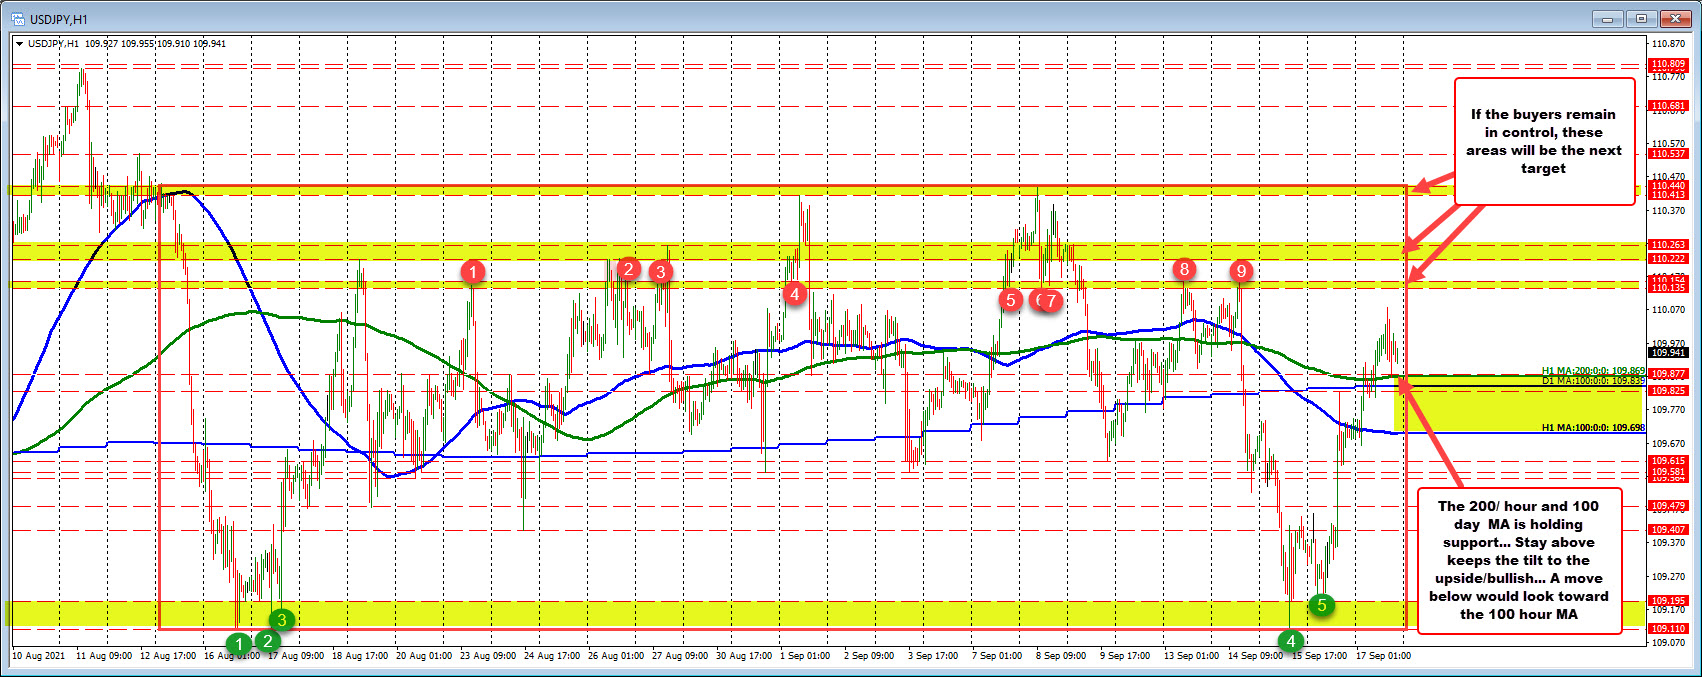 USDJPY stays above the 200 hour MA/100 day MA